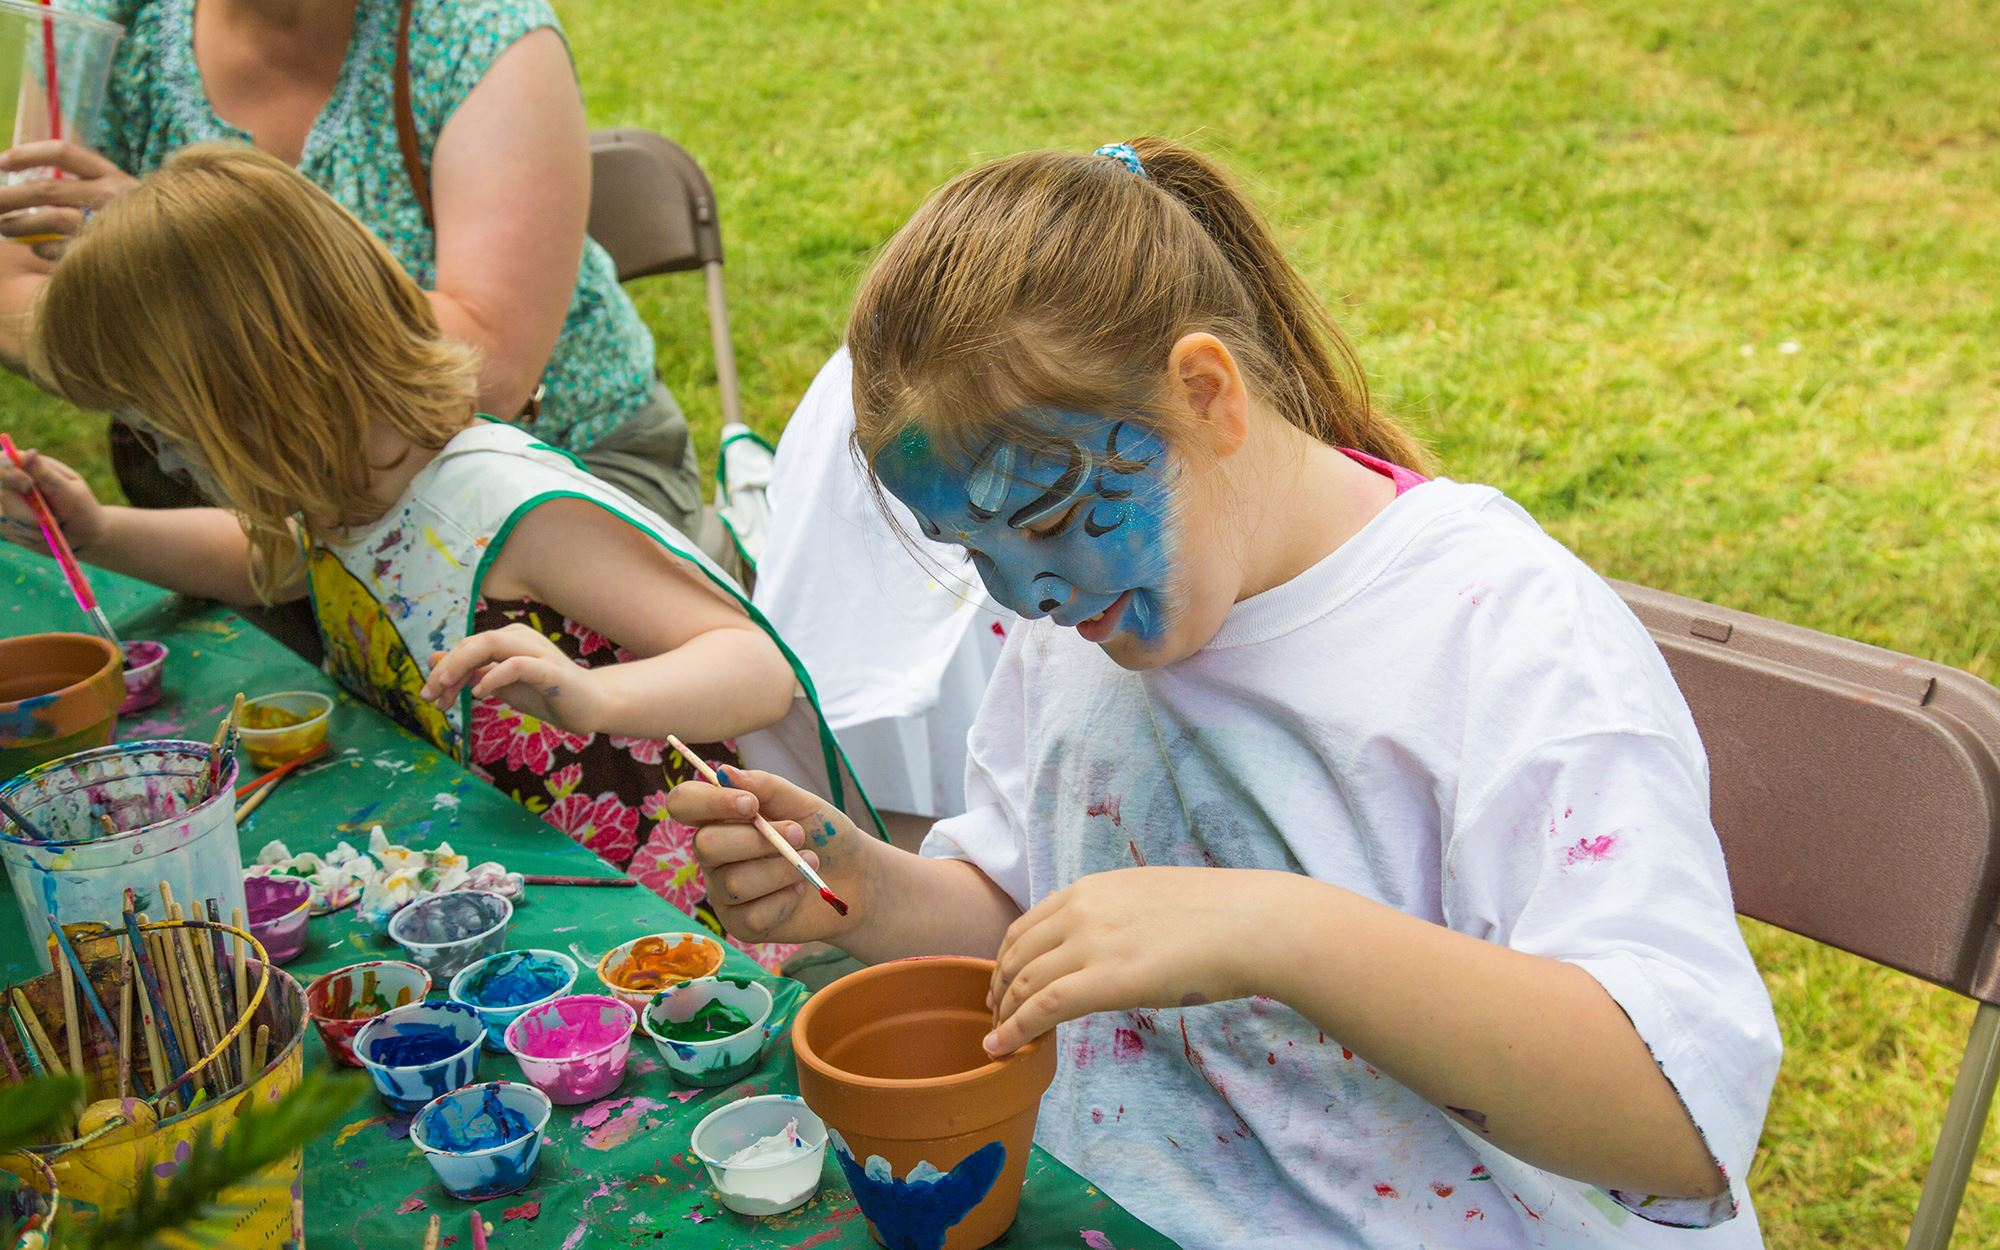 Girl with her face painted, painting a planter pot